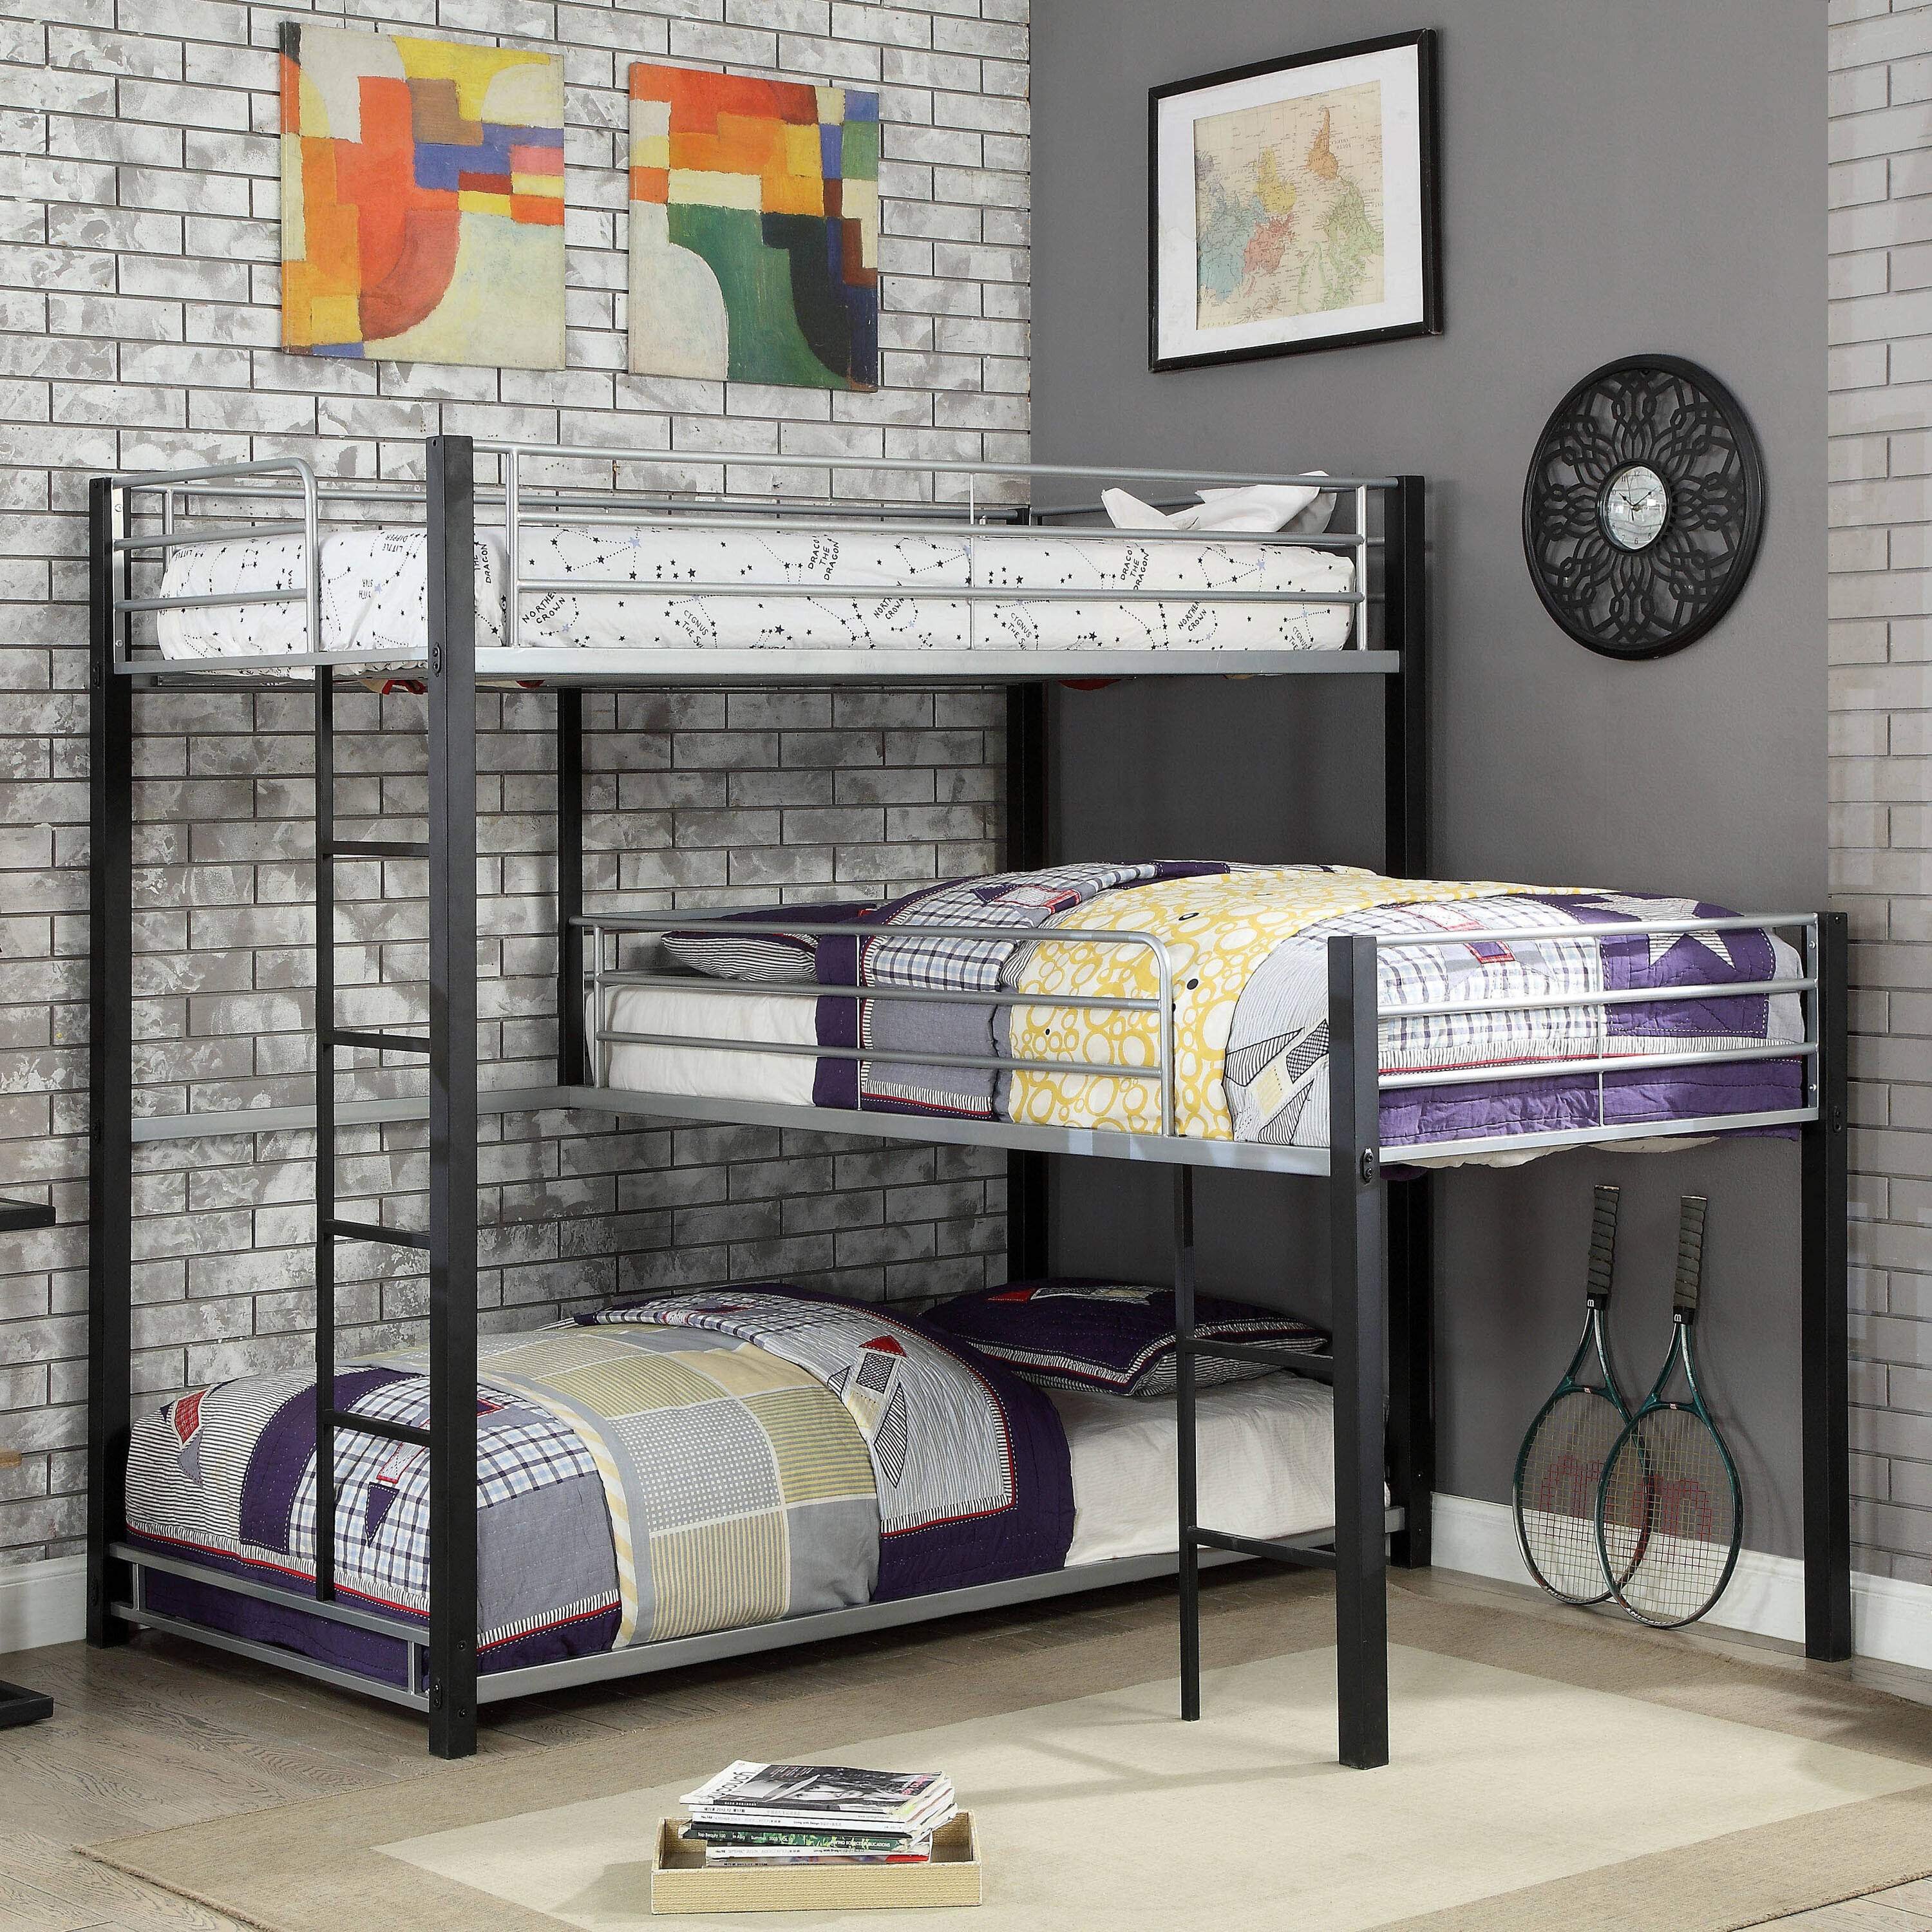 Unique Triple Bunk Beds Cheaper Than Retail Price Buy Clothing Accessories And Lifestyle Products For Women Men